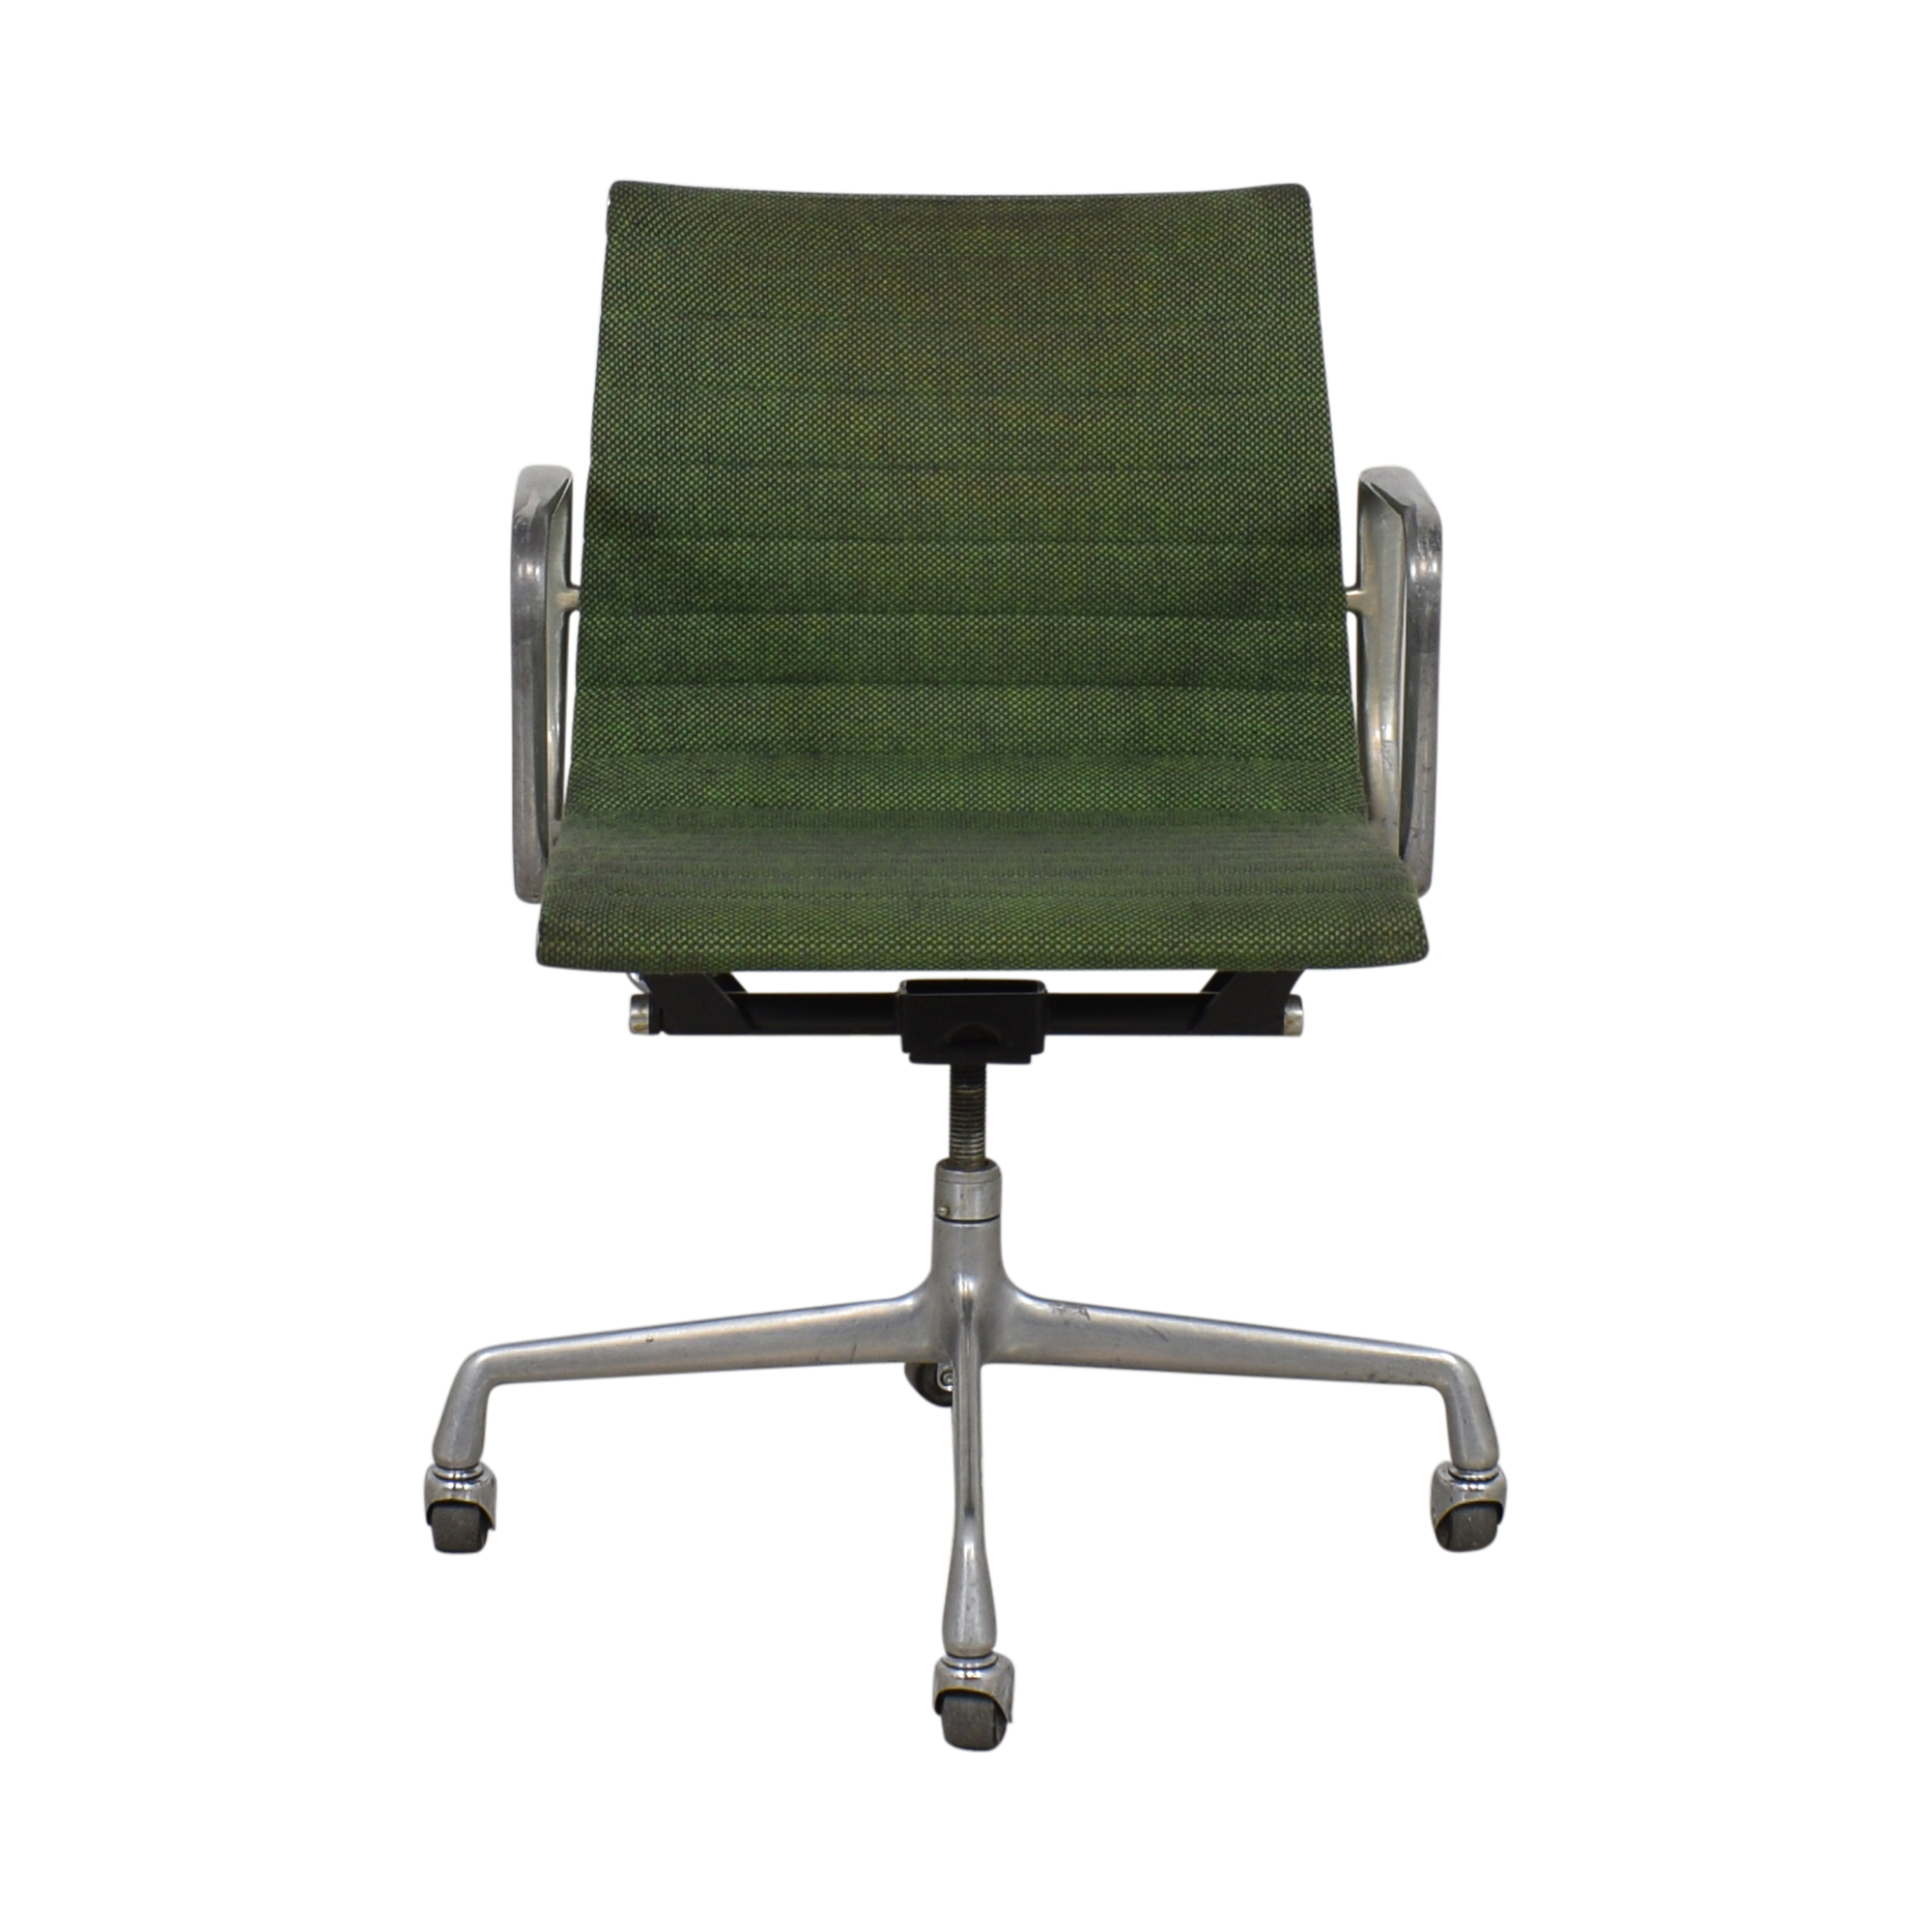 Herman Miller Herman Miller Eames Aluminum Group Management Chair used